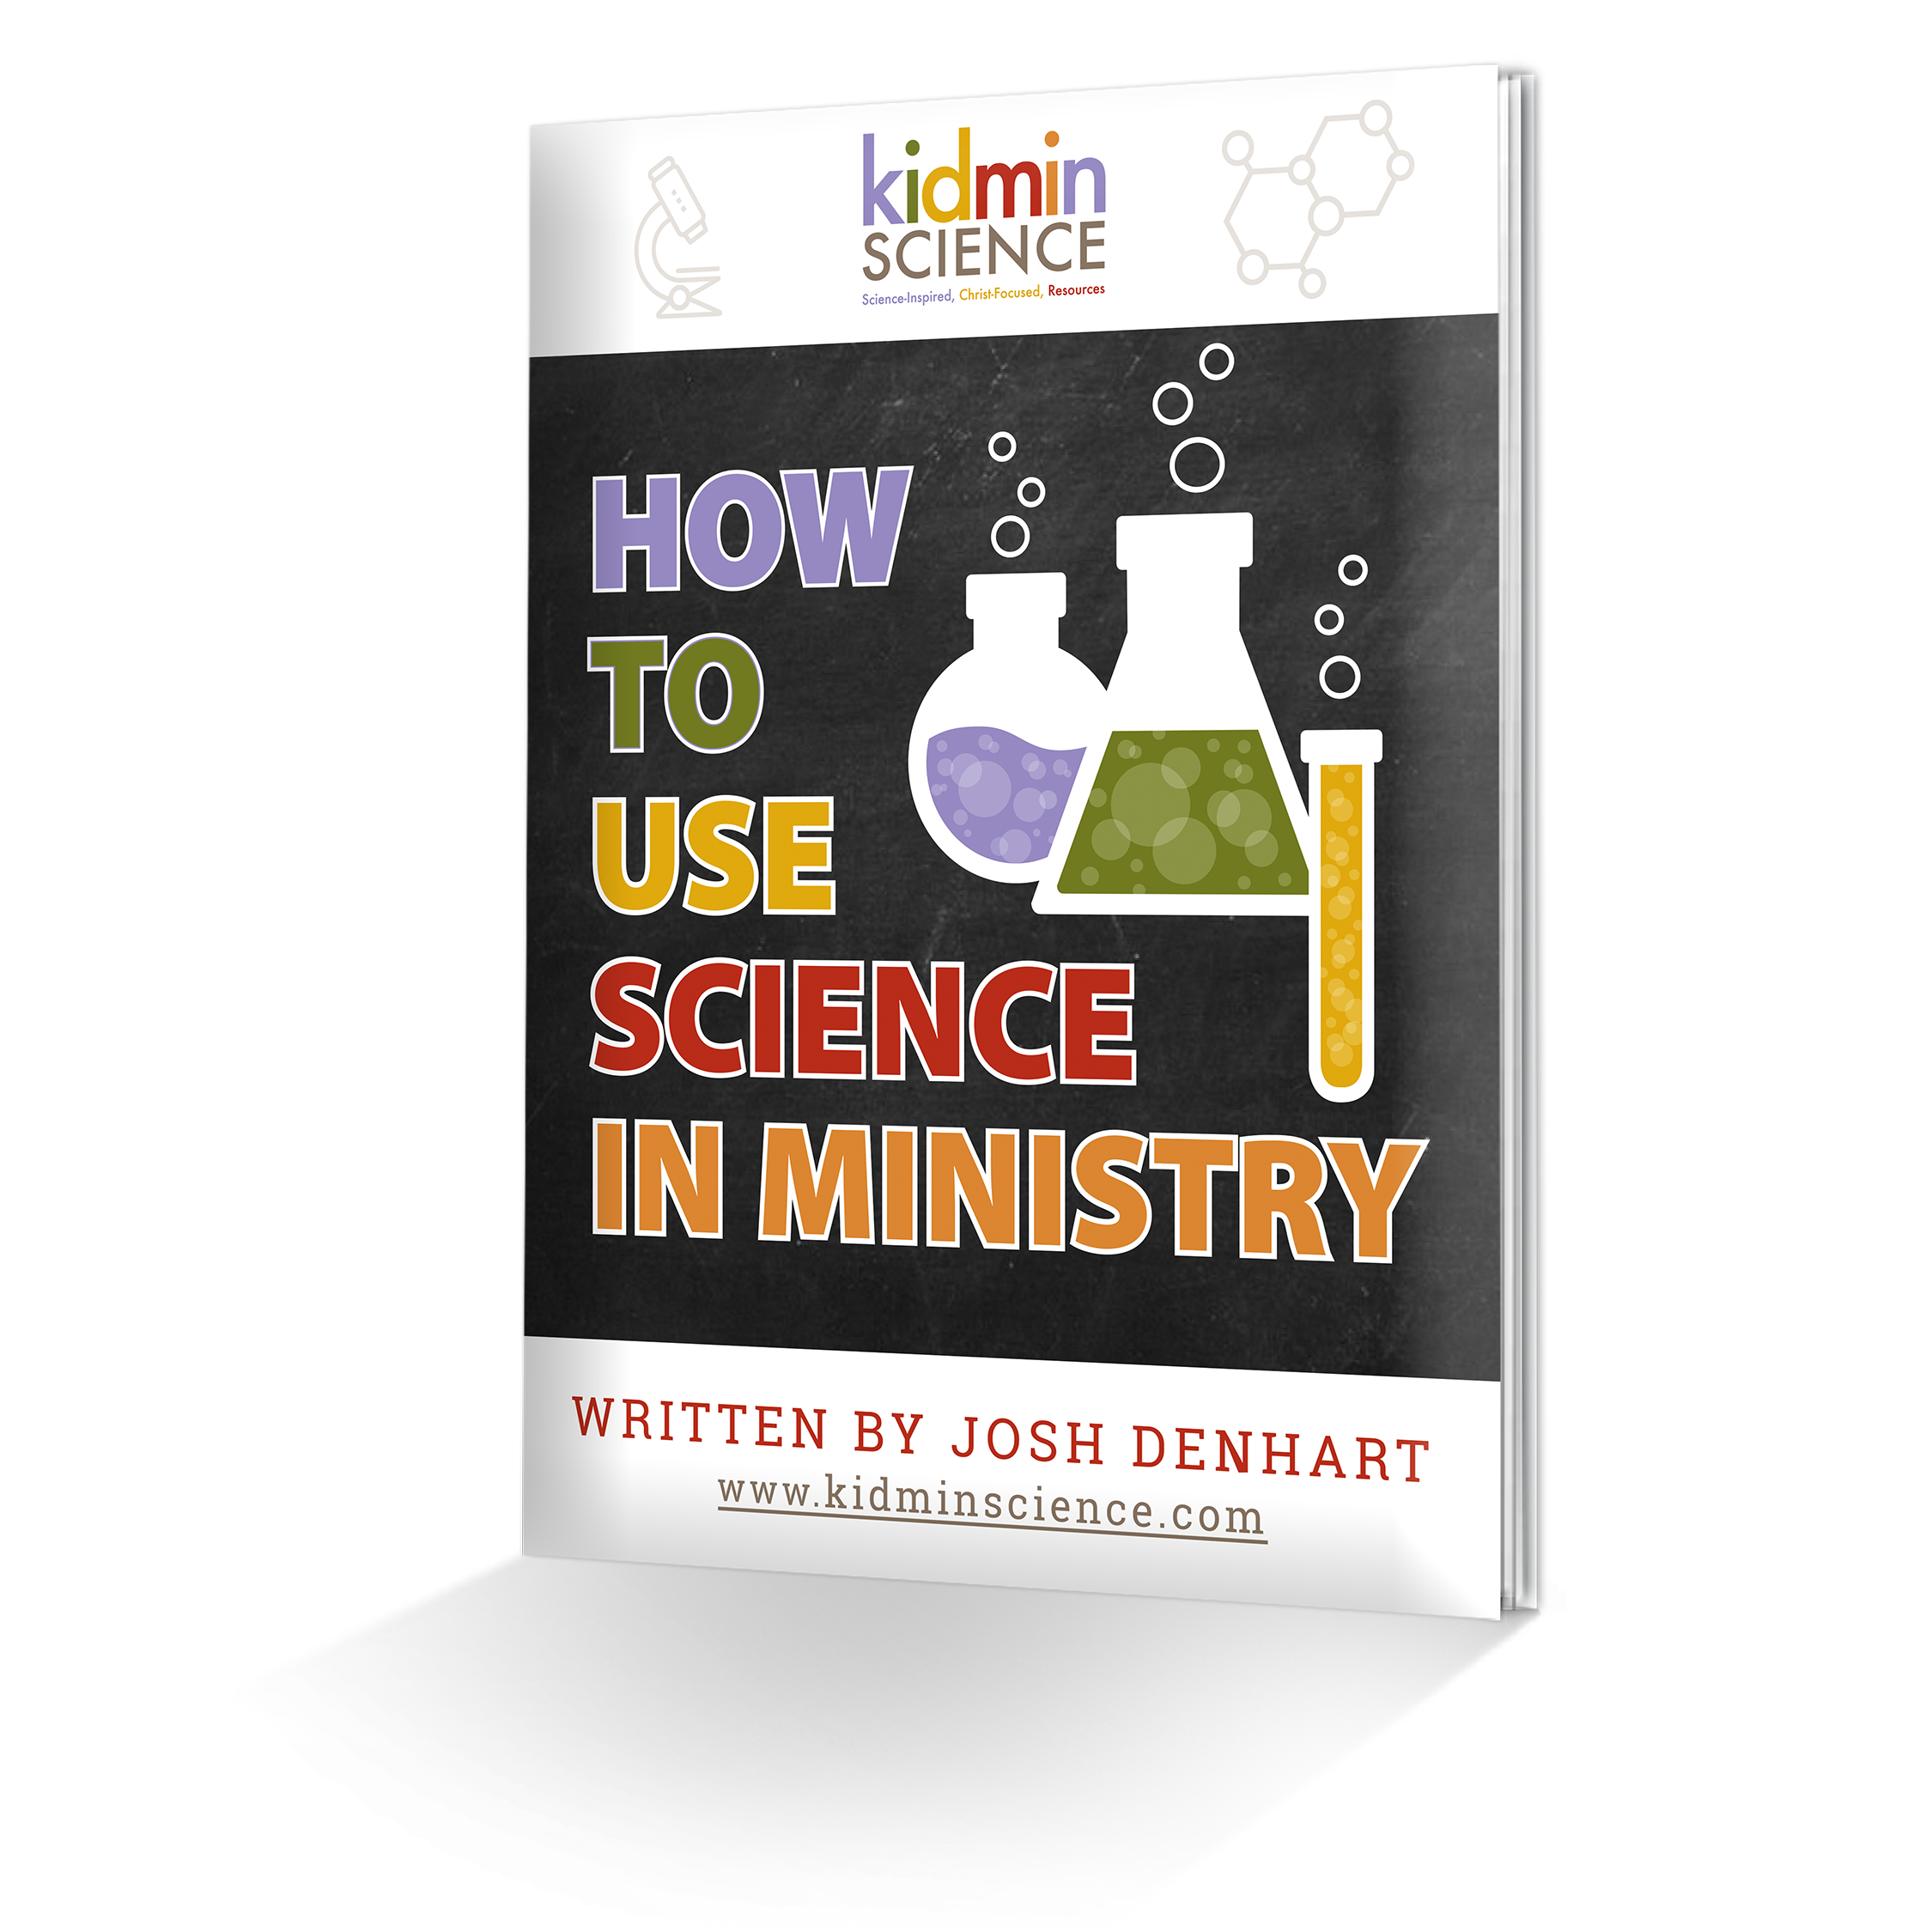 Science VBS - A Science-Inspired, Christ-Focused VBS